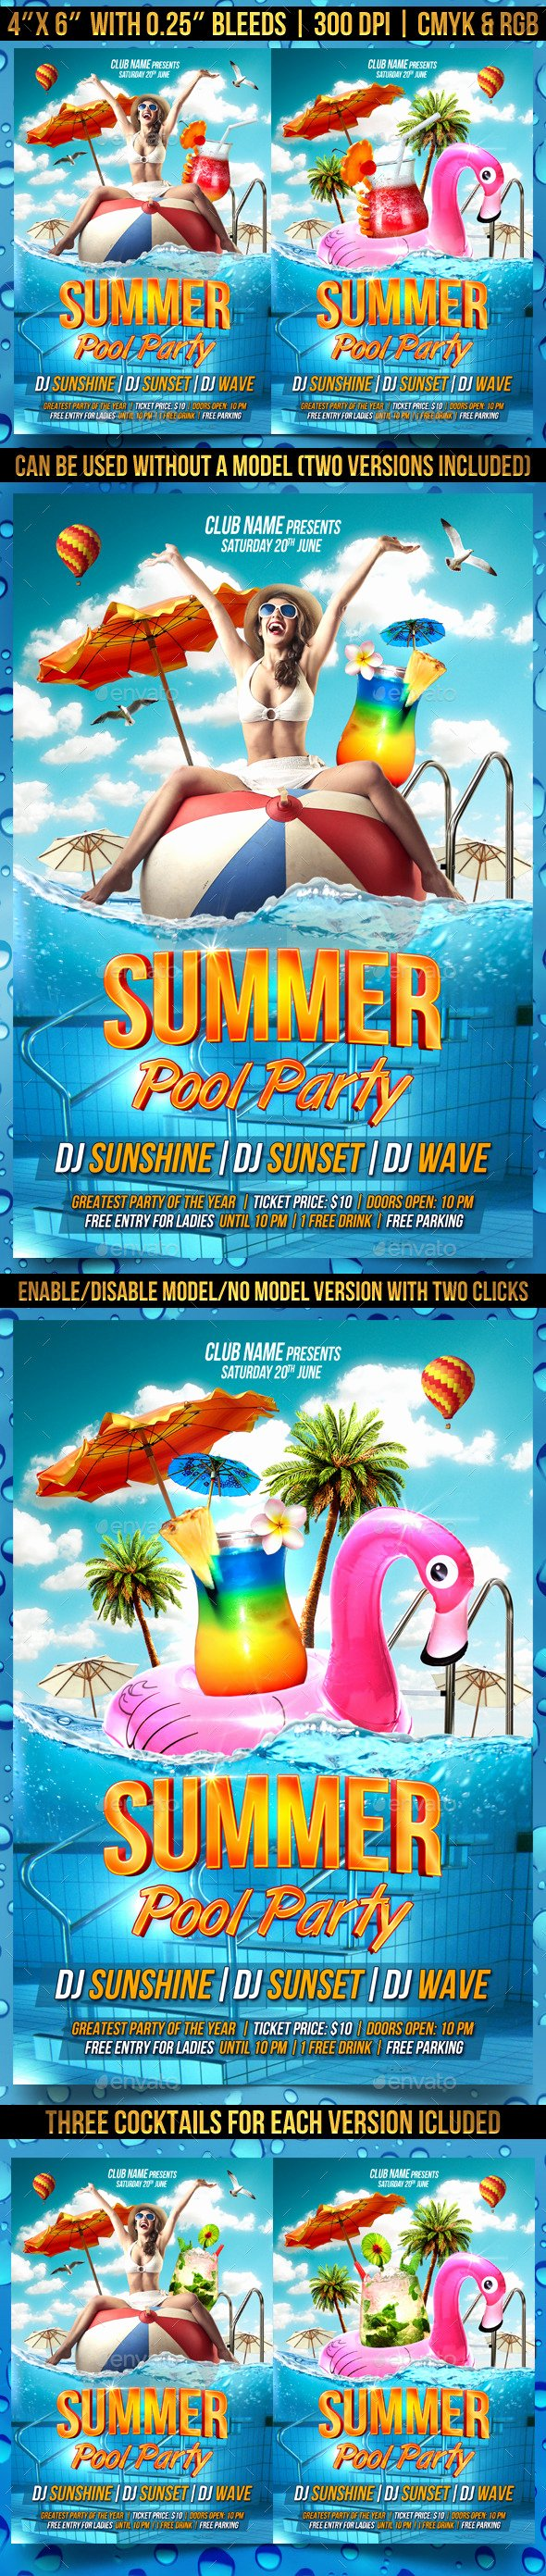 Pool Party Flyer Template by Gugulanul